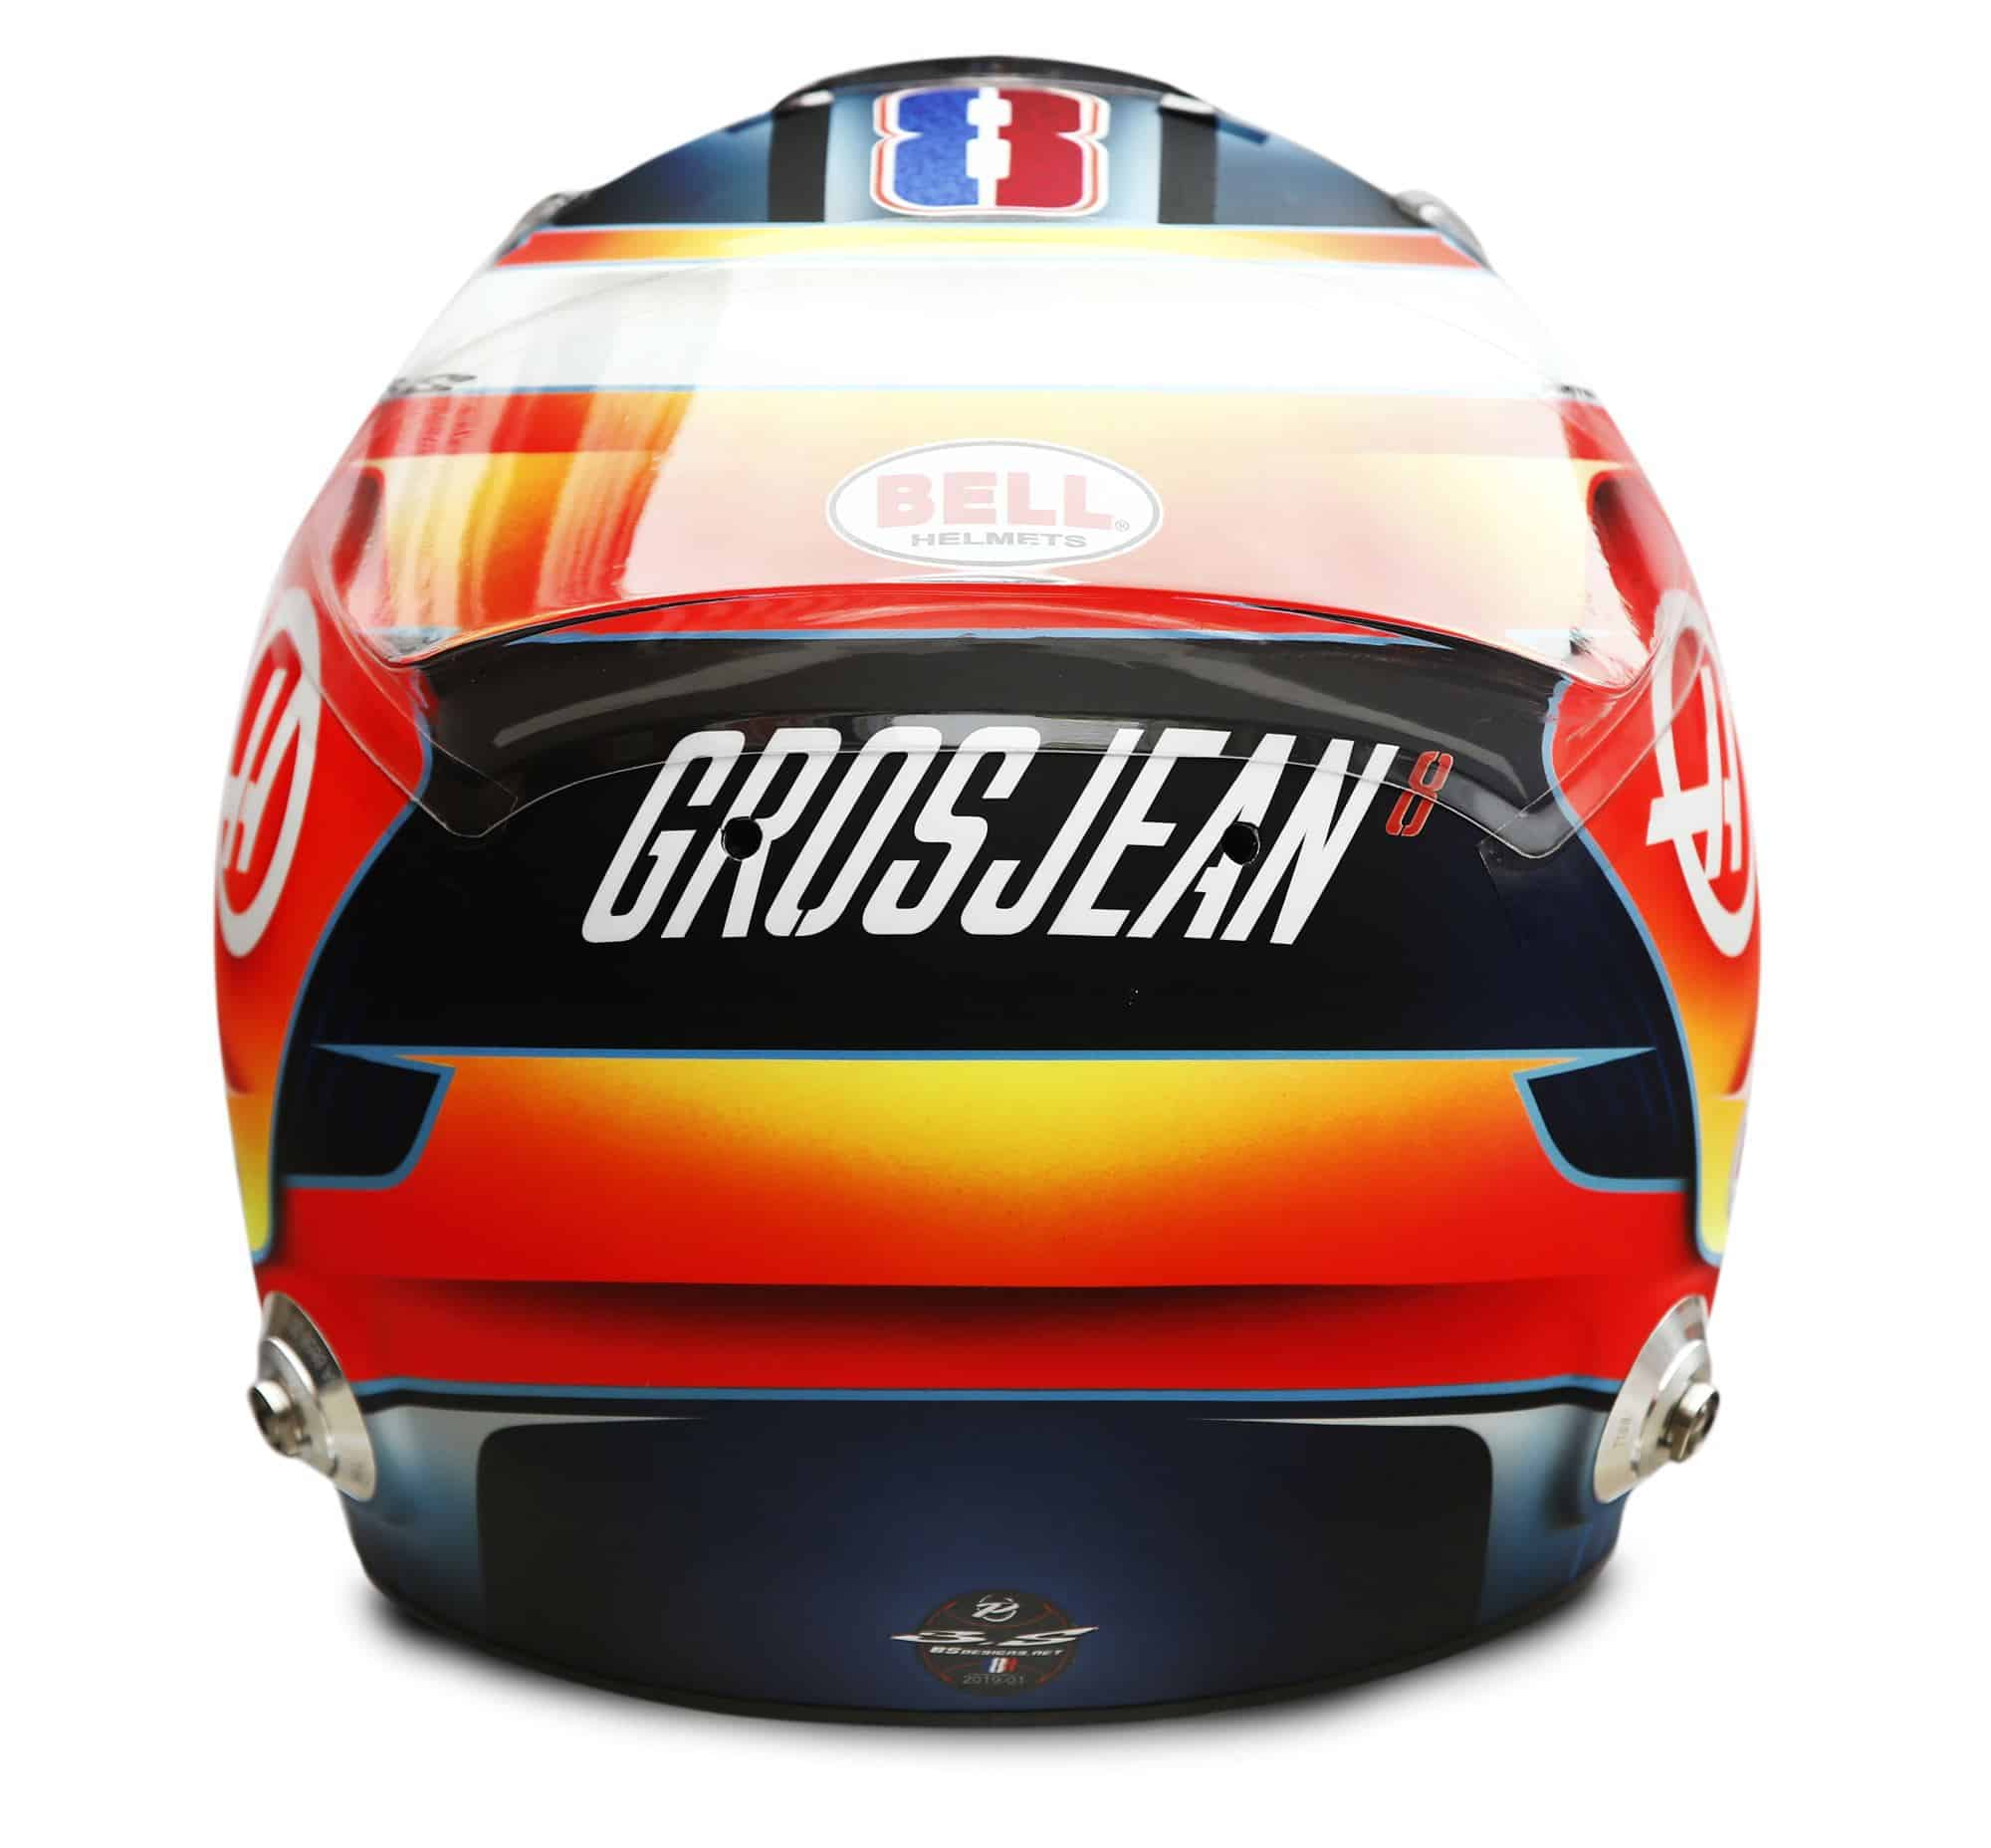 2019 Rich Energy Haas F1 Team Romain Grosjean helmet rear Photo Haas Edited by MAXF1net